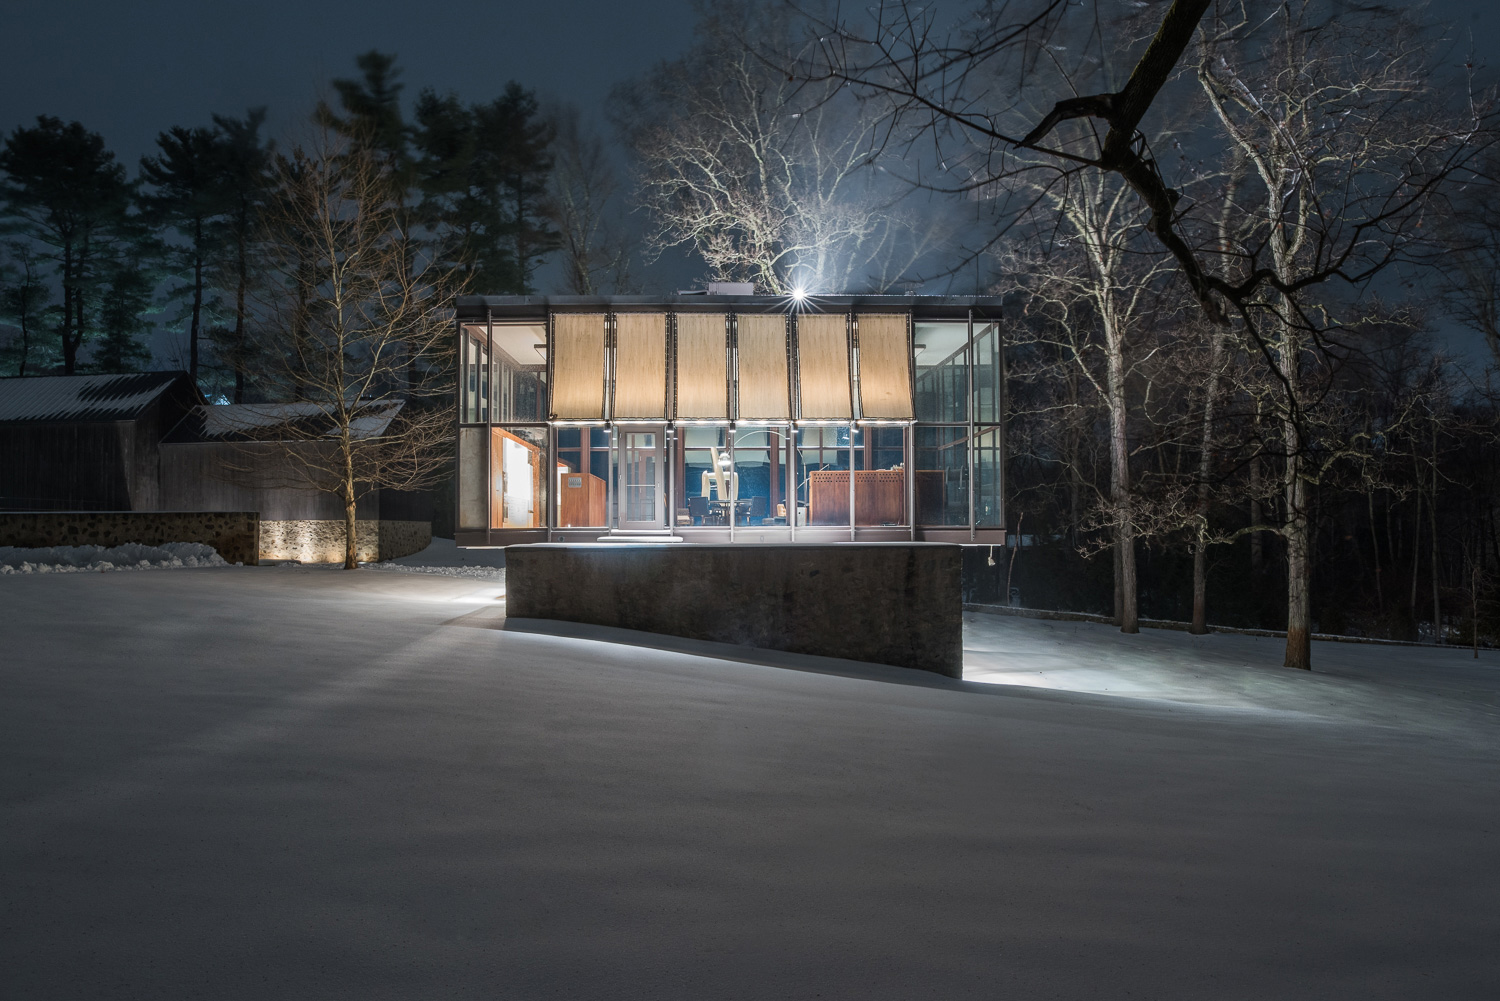 Tour Philip Johnson's Modernist masterpiece The Wiley House